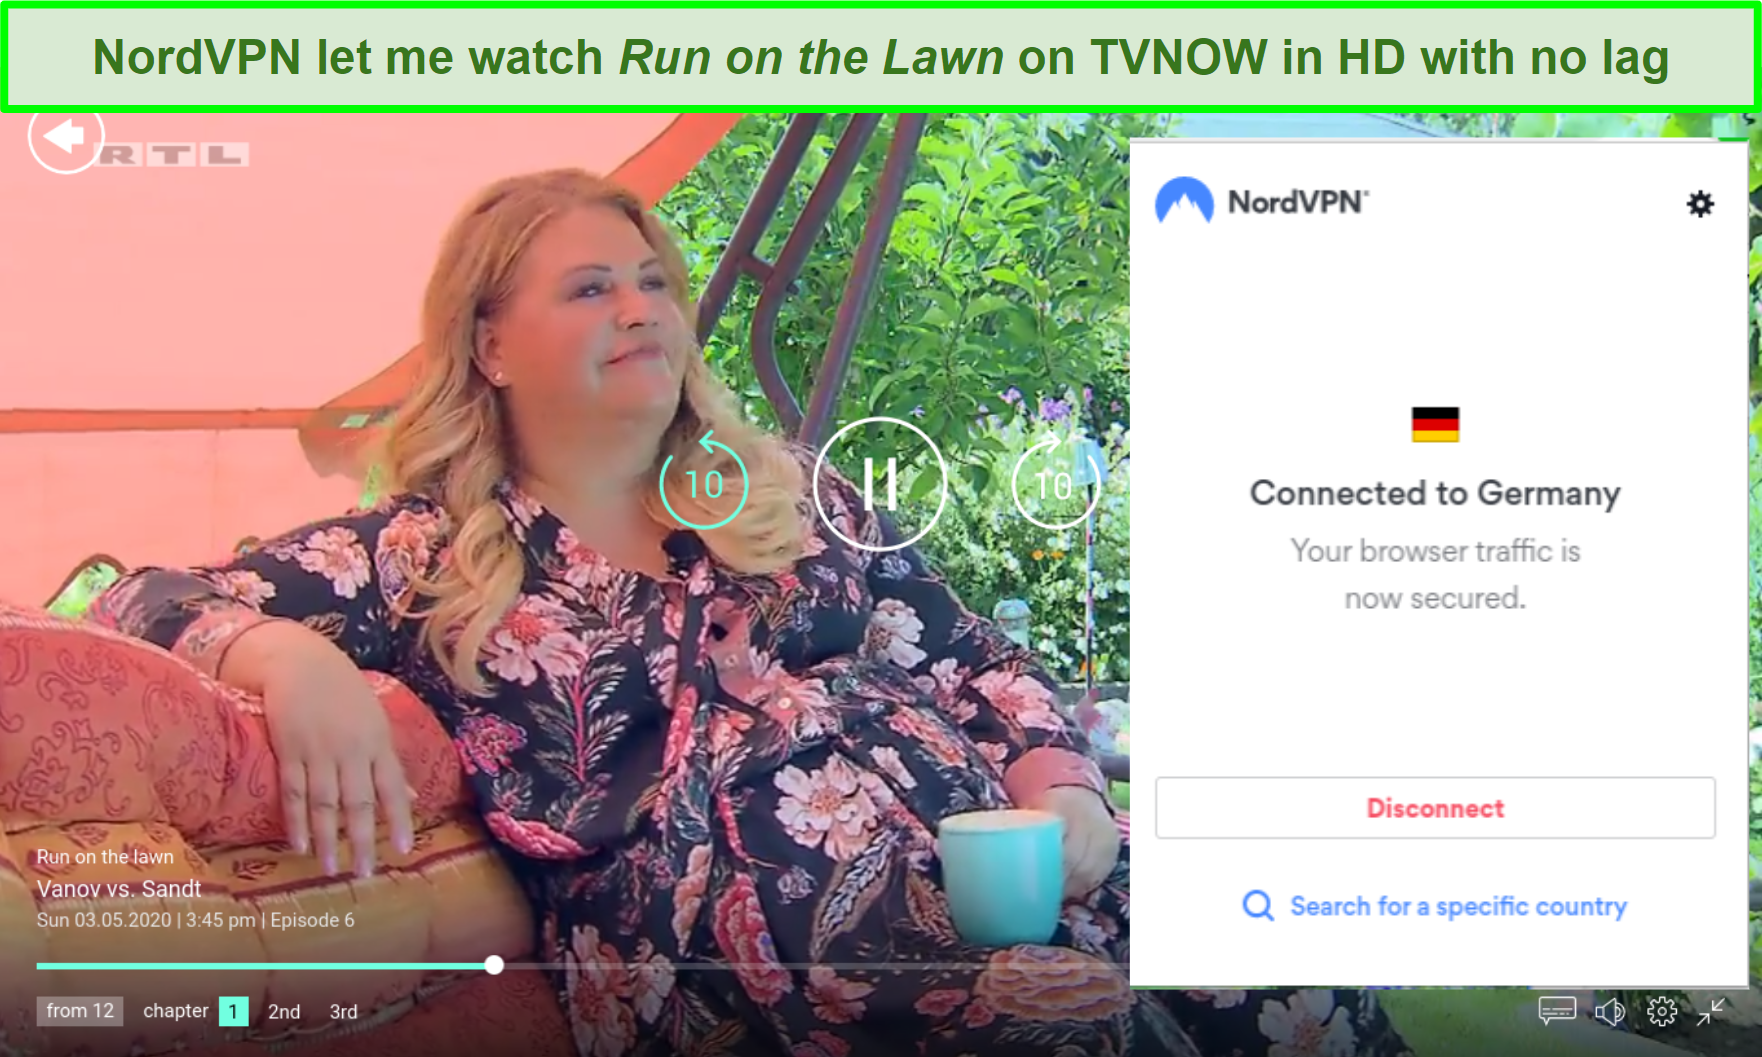 Screenshot of NordVPN unblocking Run on the Lawn on TVNOW